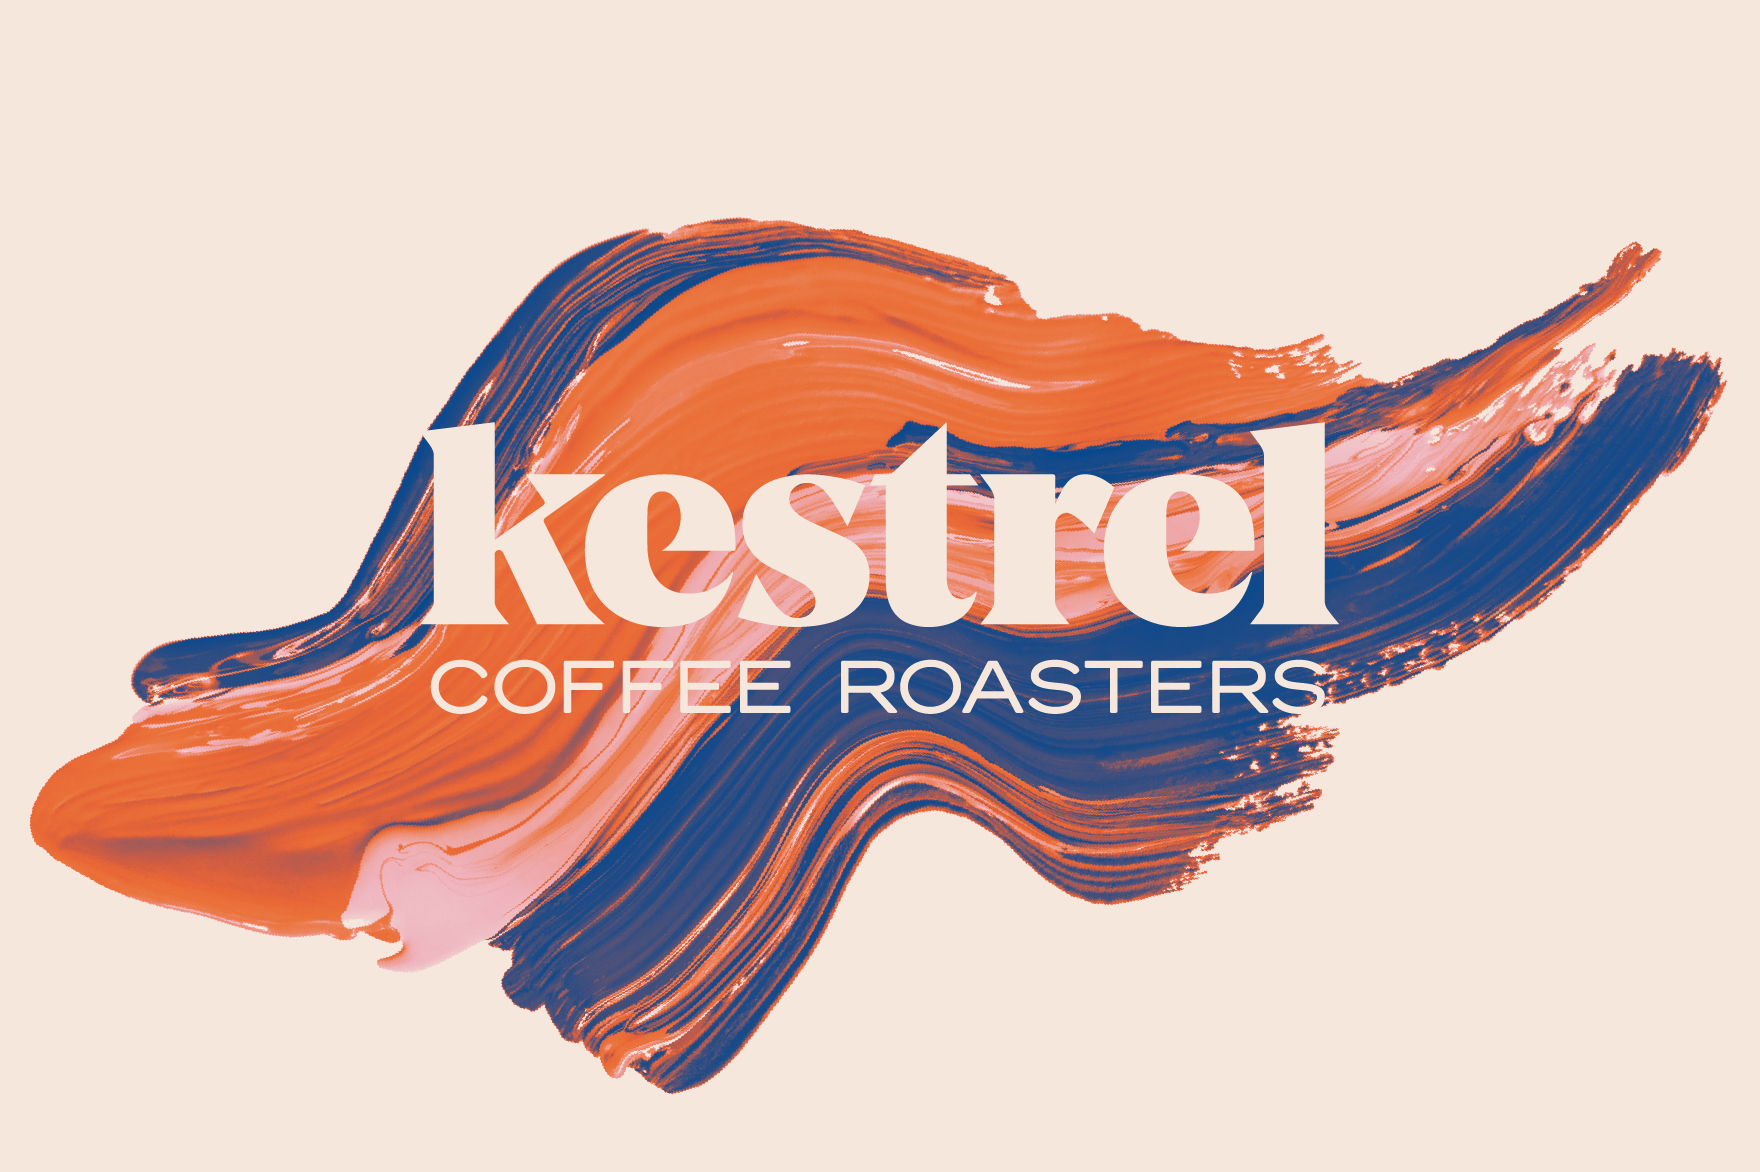 Kestrel Coffee Roasters